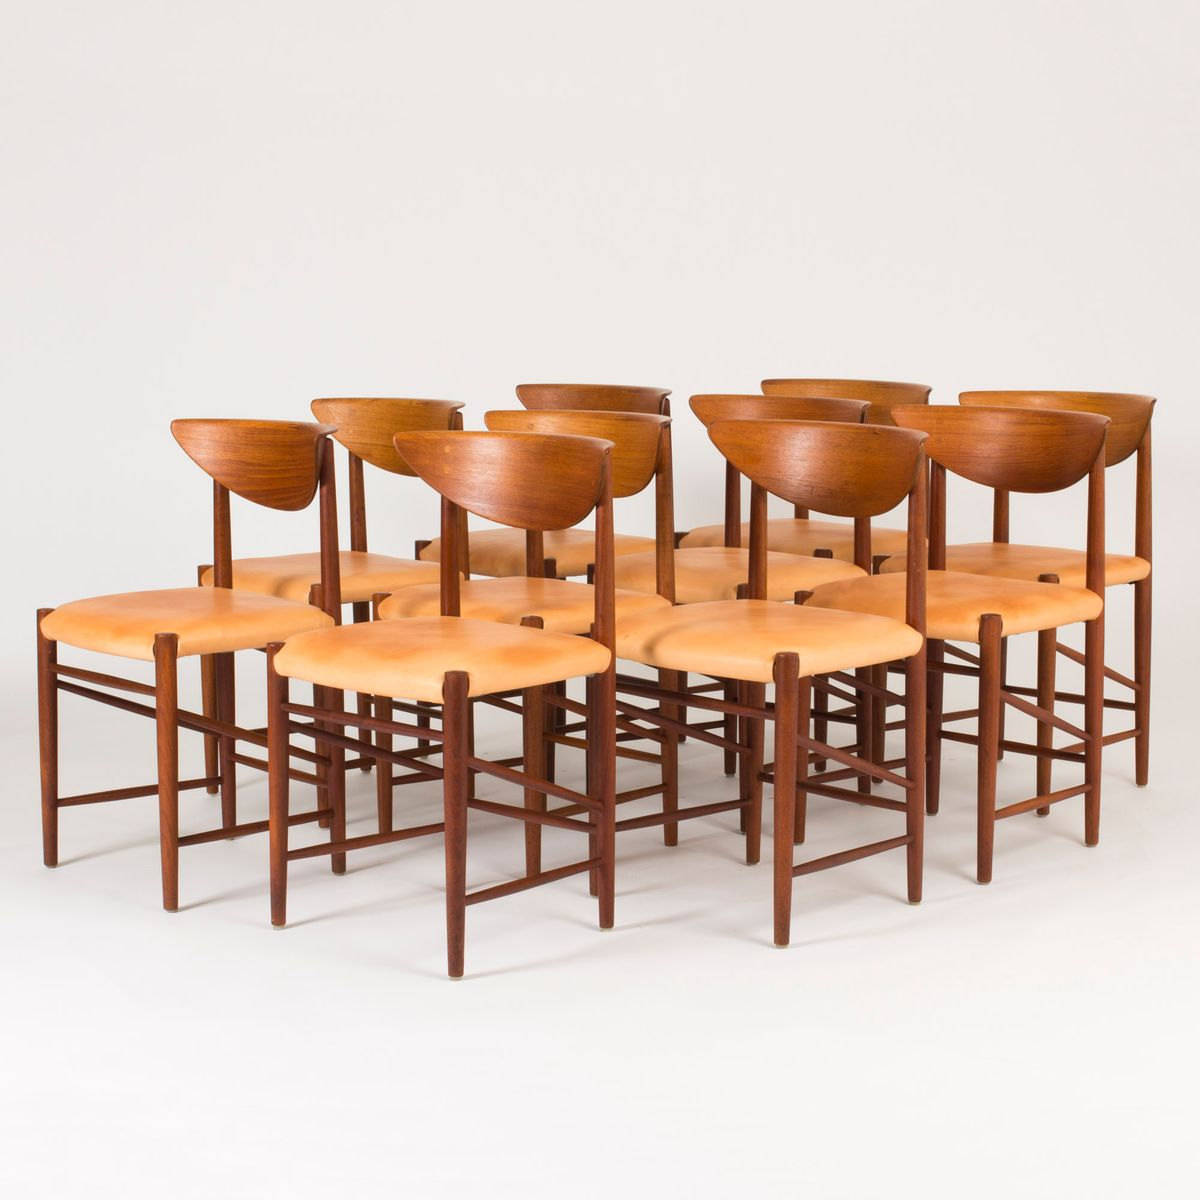 Dining Chairs By Peter Hvidt And Orla Møllgaard For Søborg Møbelfabrik 1950s Set Of 10 At Pamono